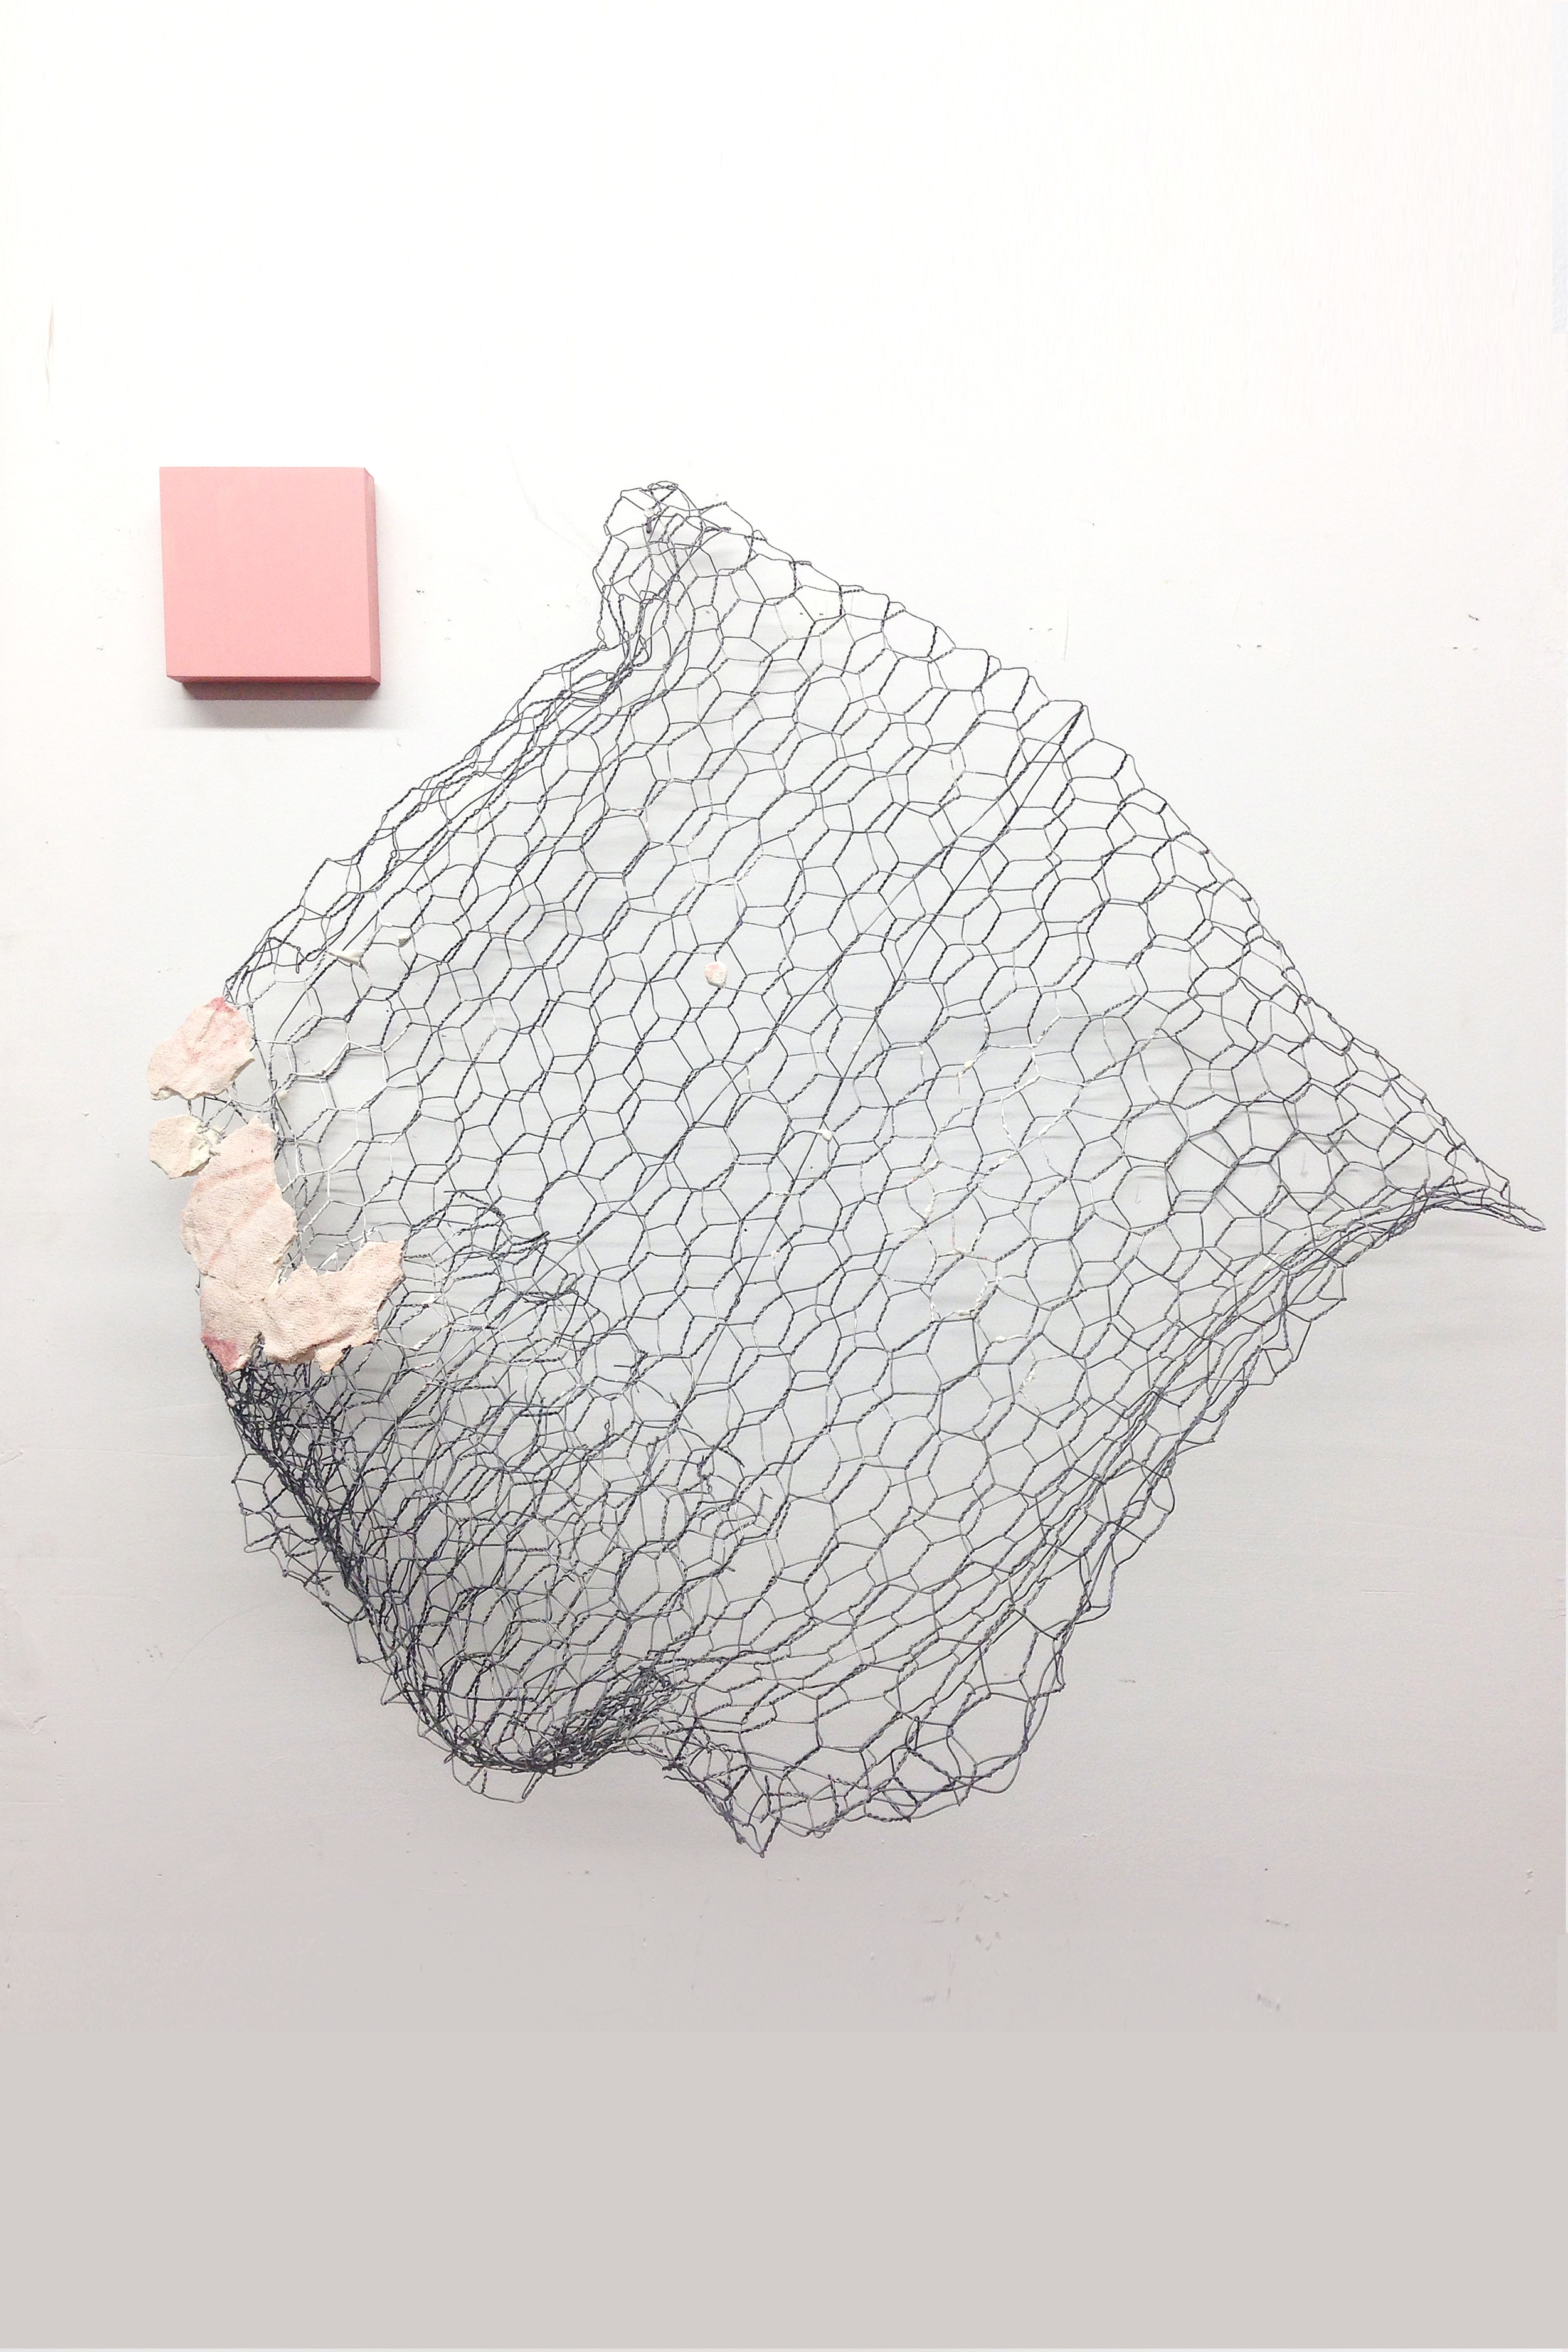 "TIBICOS   acrylic, pine, fabric residue on plaster chicken wire 24"" x 24"" x 10""  2014"